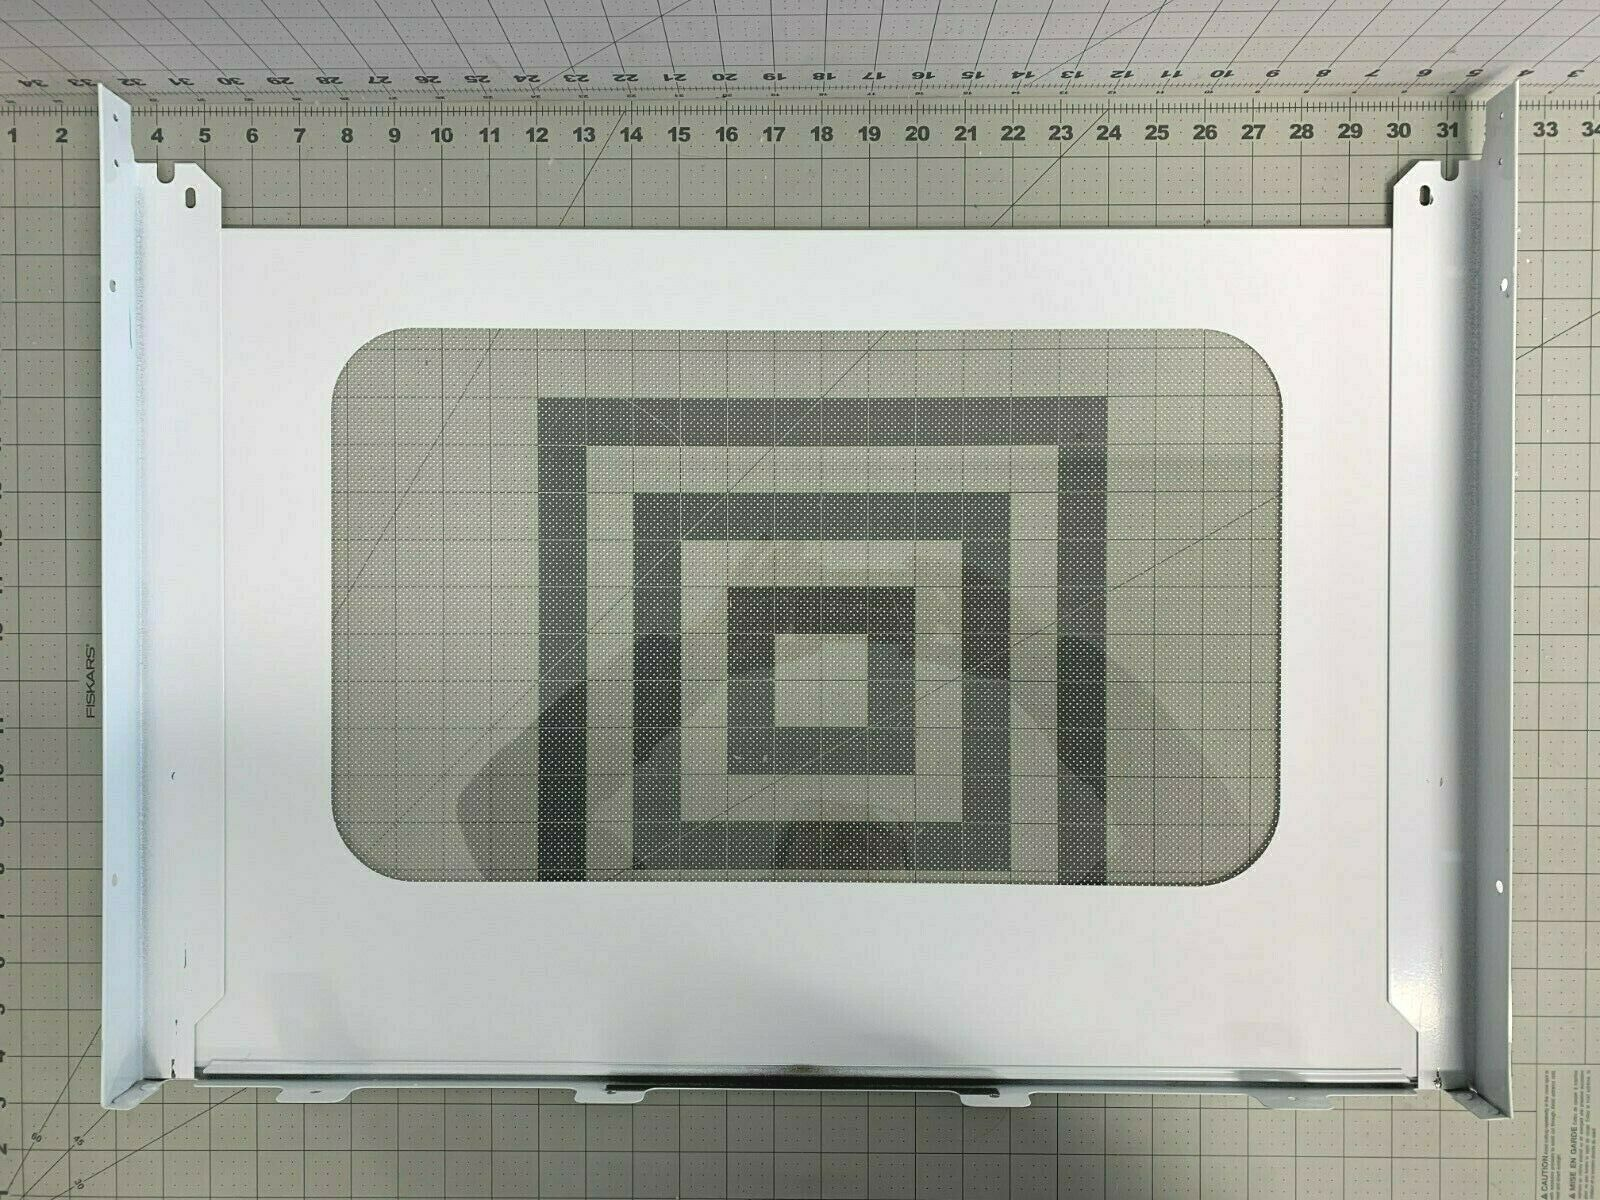 GE Oven Stove Range White Door Glass Outer w// frame WB57T10160